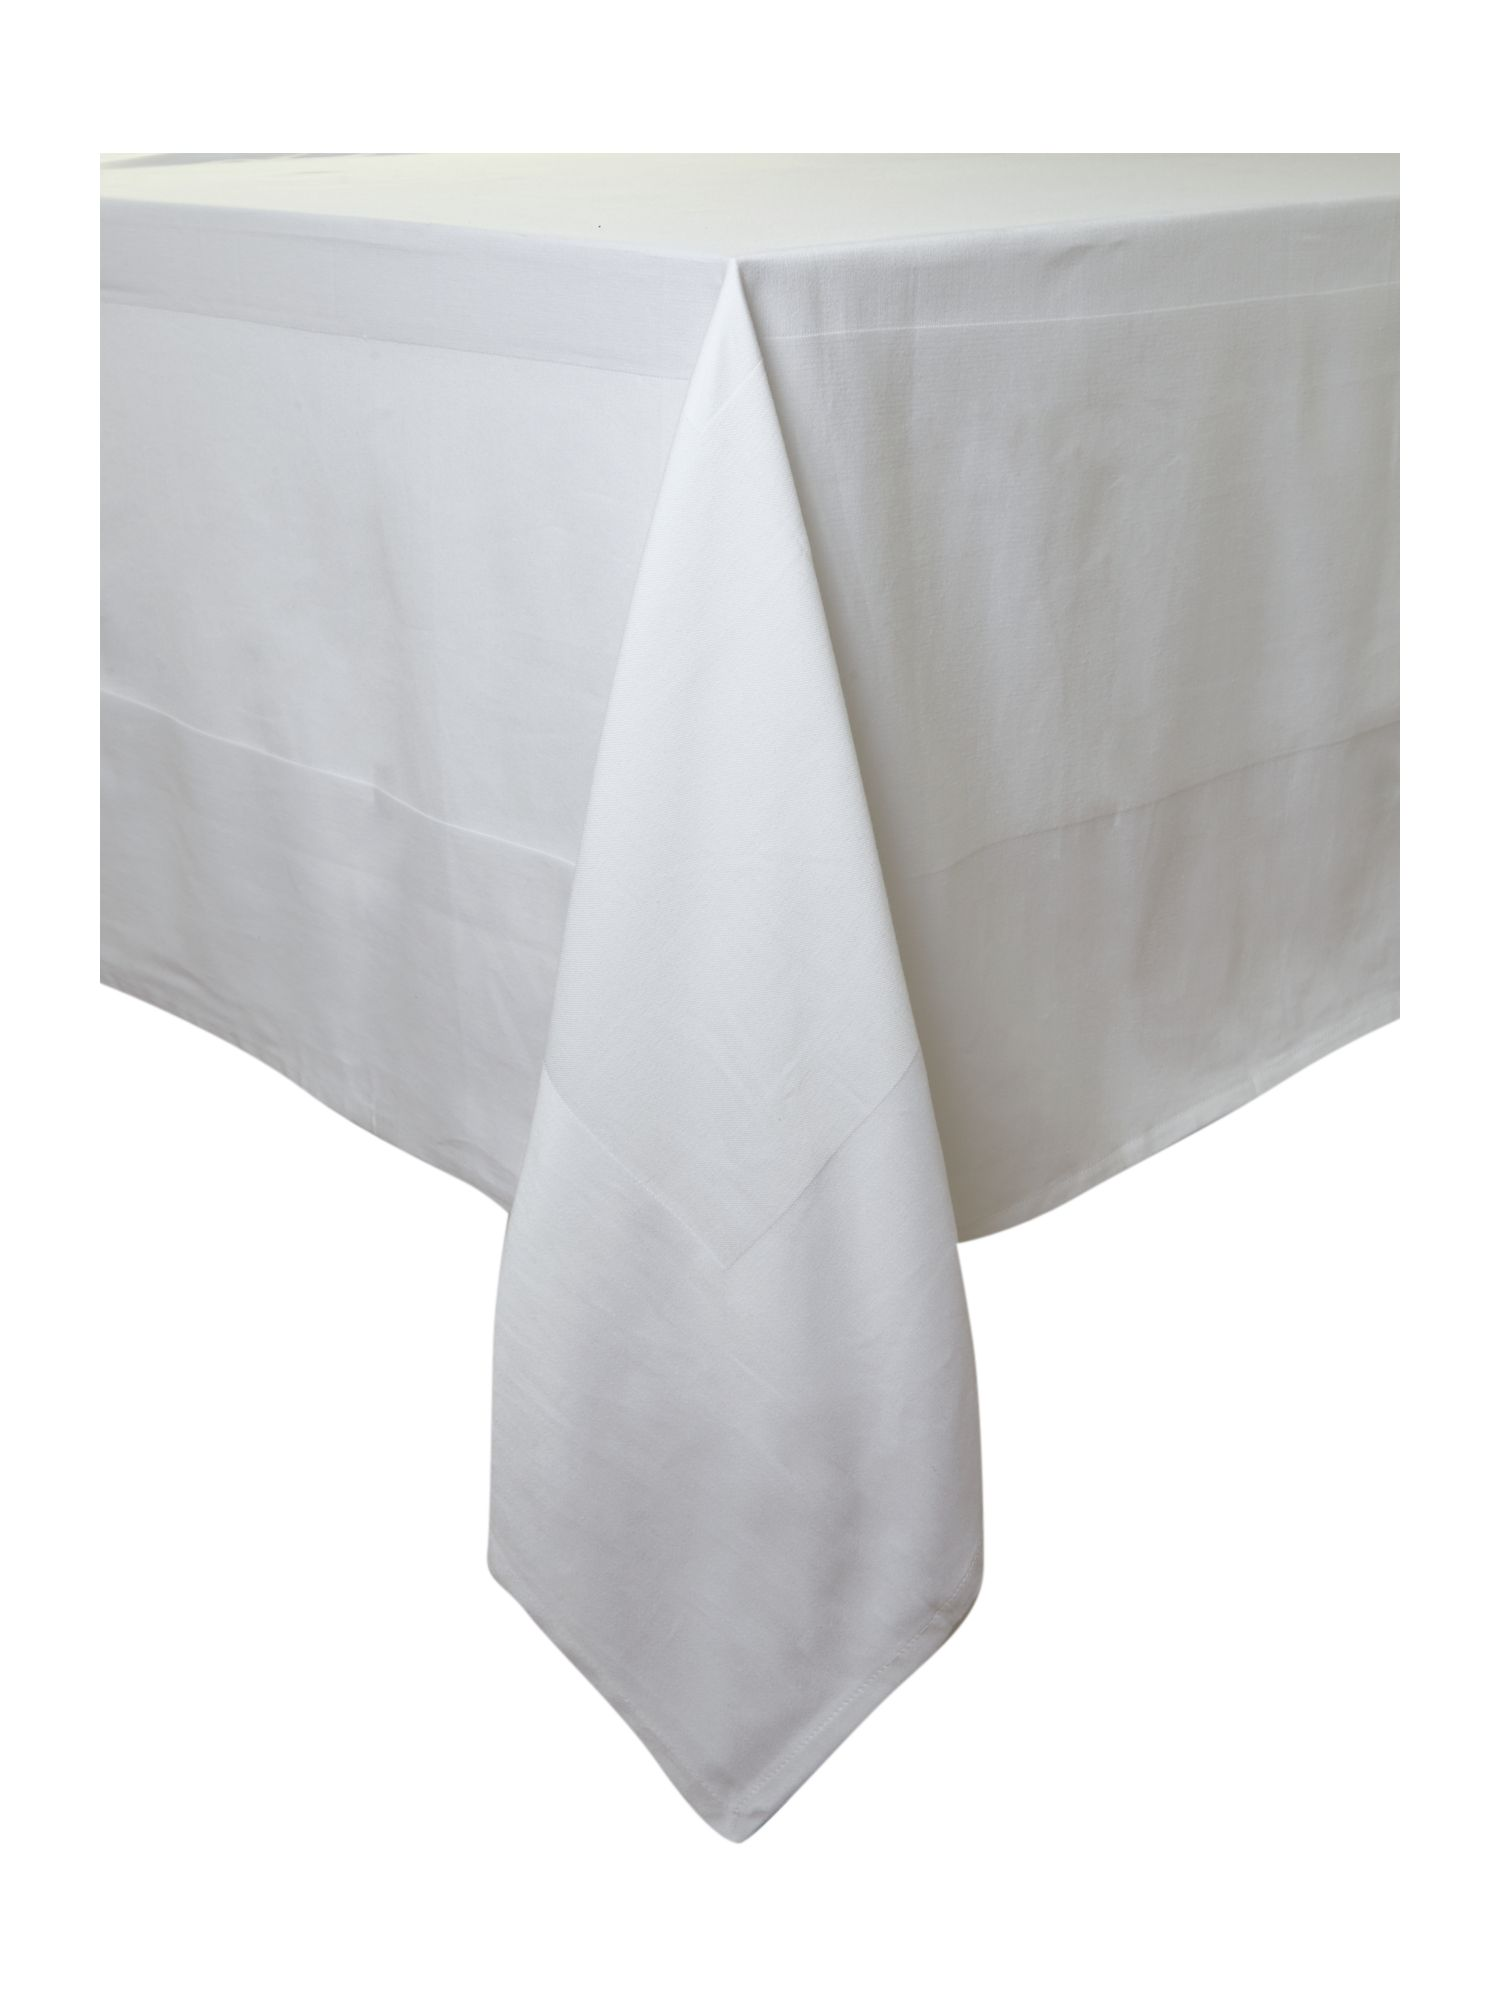 Pavilion tablecloth 180 x 260cm